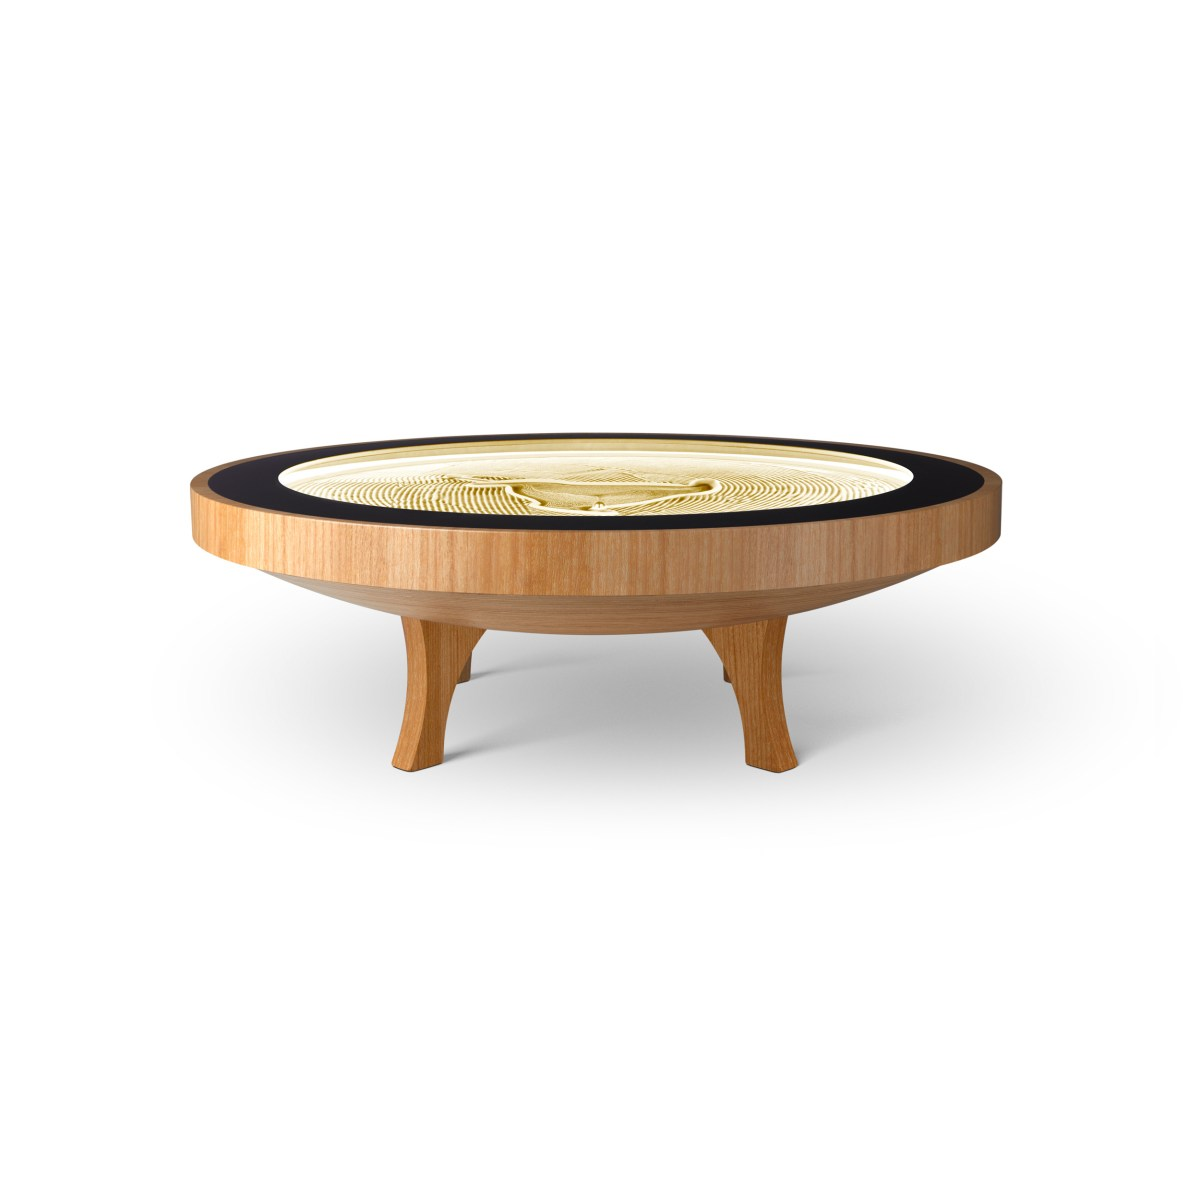 Full-Wood_4ft-Table_Cherry_Tung-2